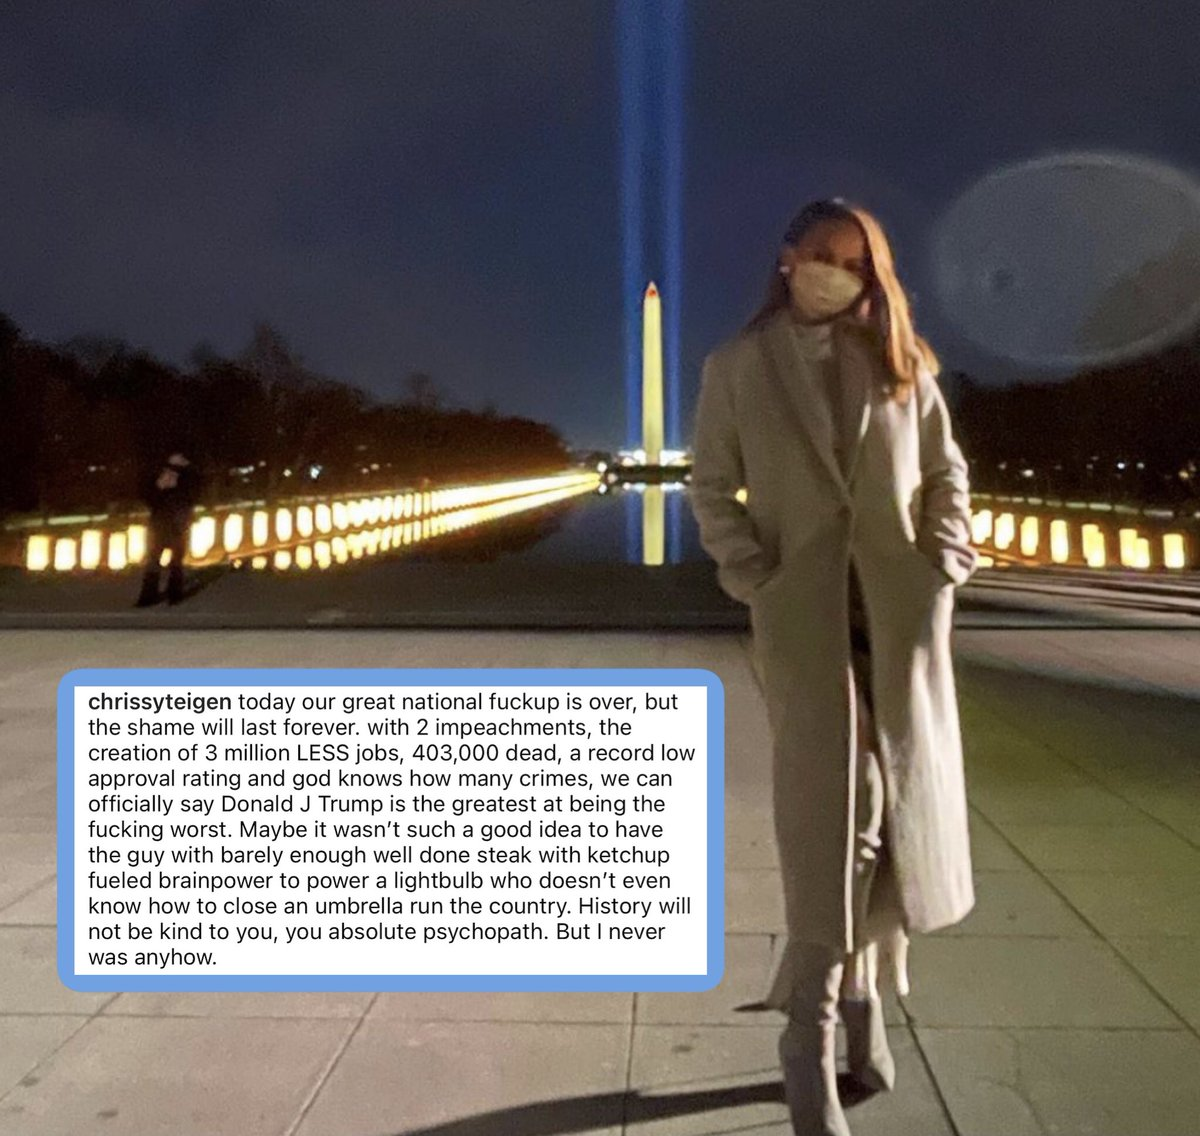 Replying to @PerezHilton: Chrissy Teigen shares what SO MANY are thinking on this historic day!